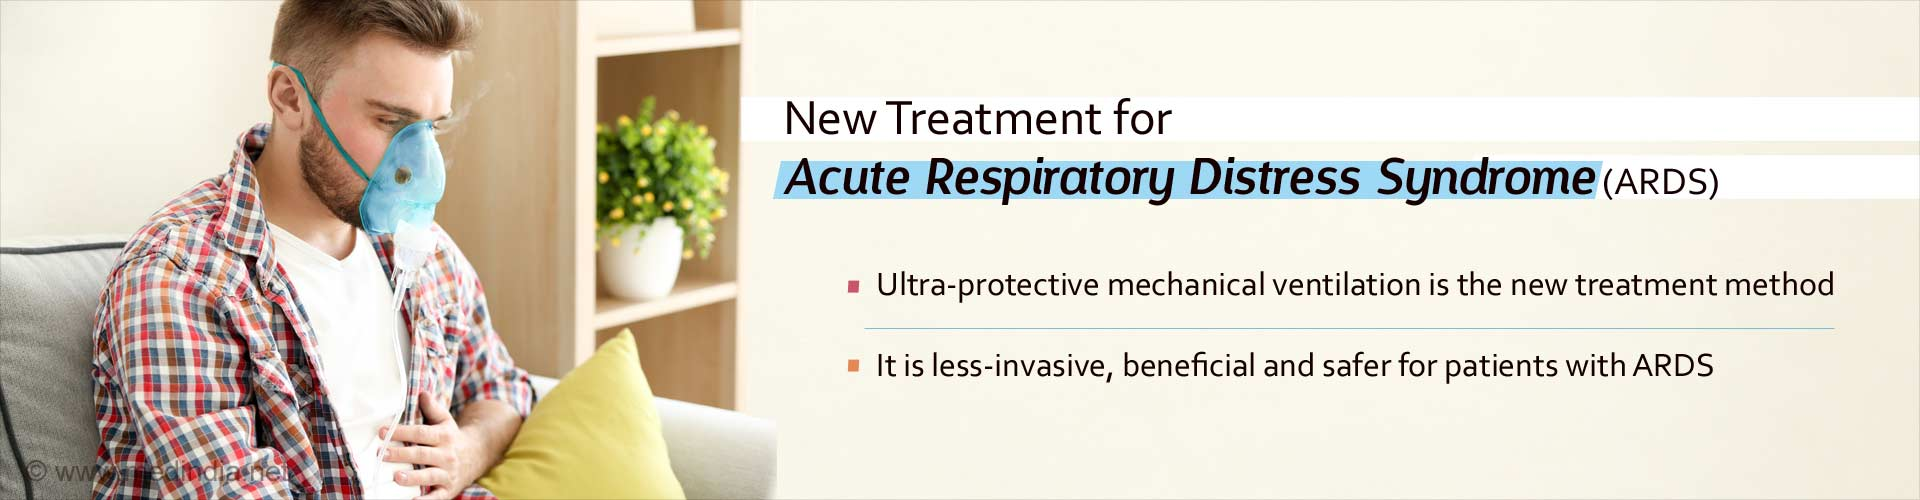 What is the Best Treatment for Acute Respiratory Distress Syndrome?